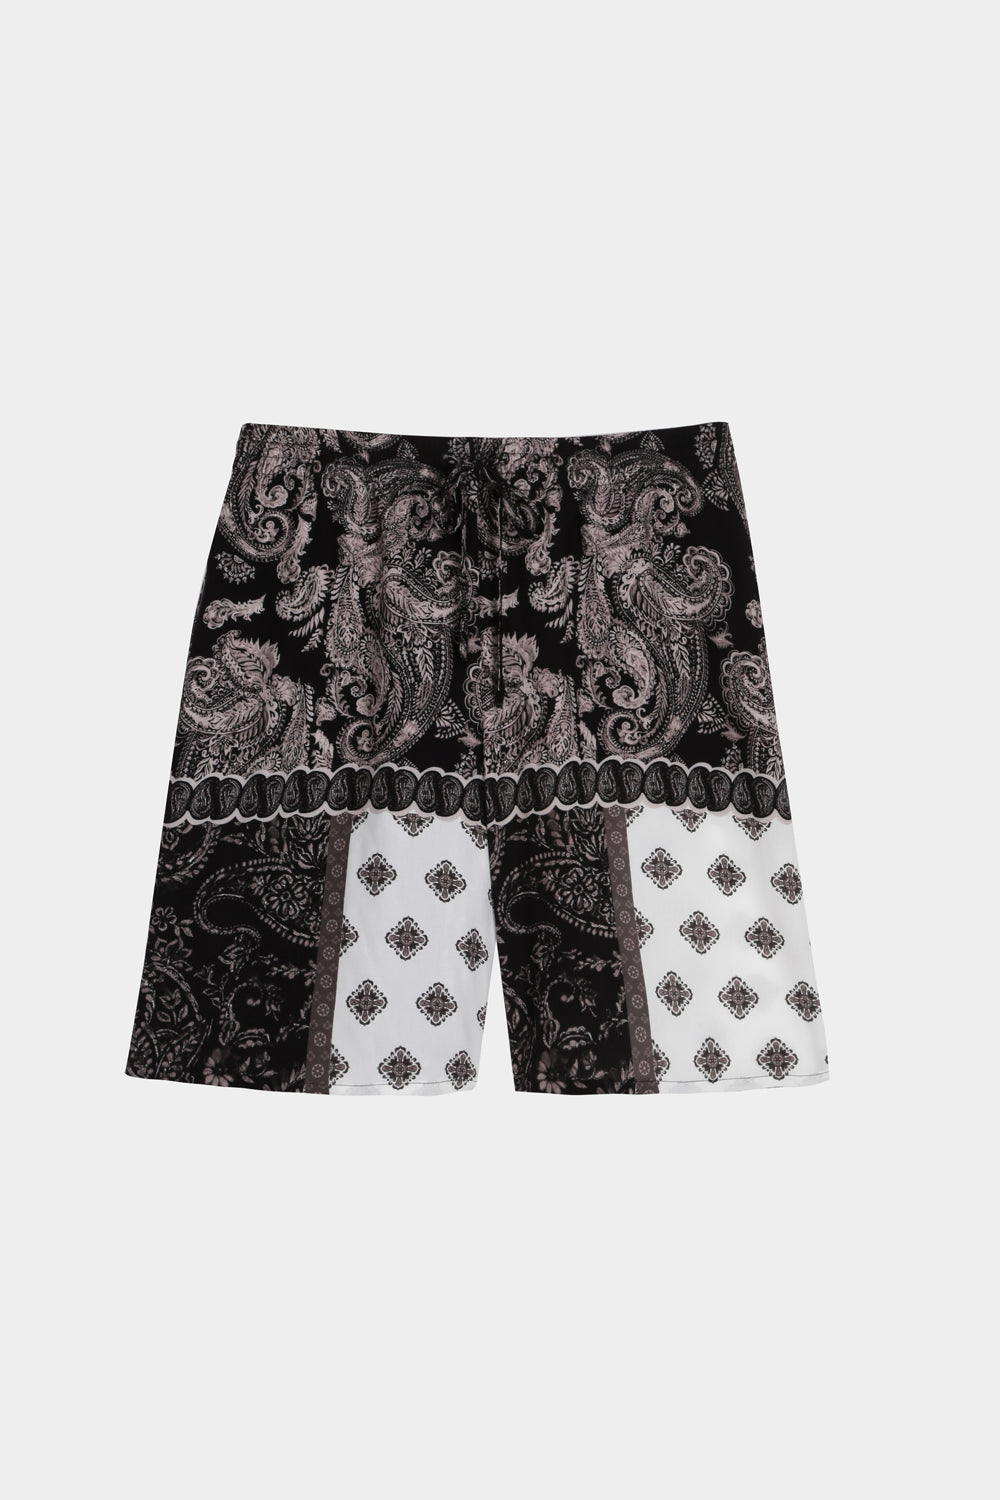 Paisley print long drawstring shorts